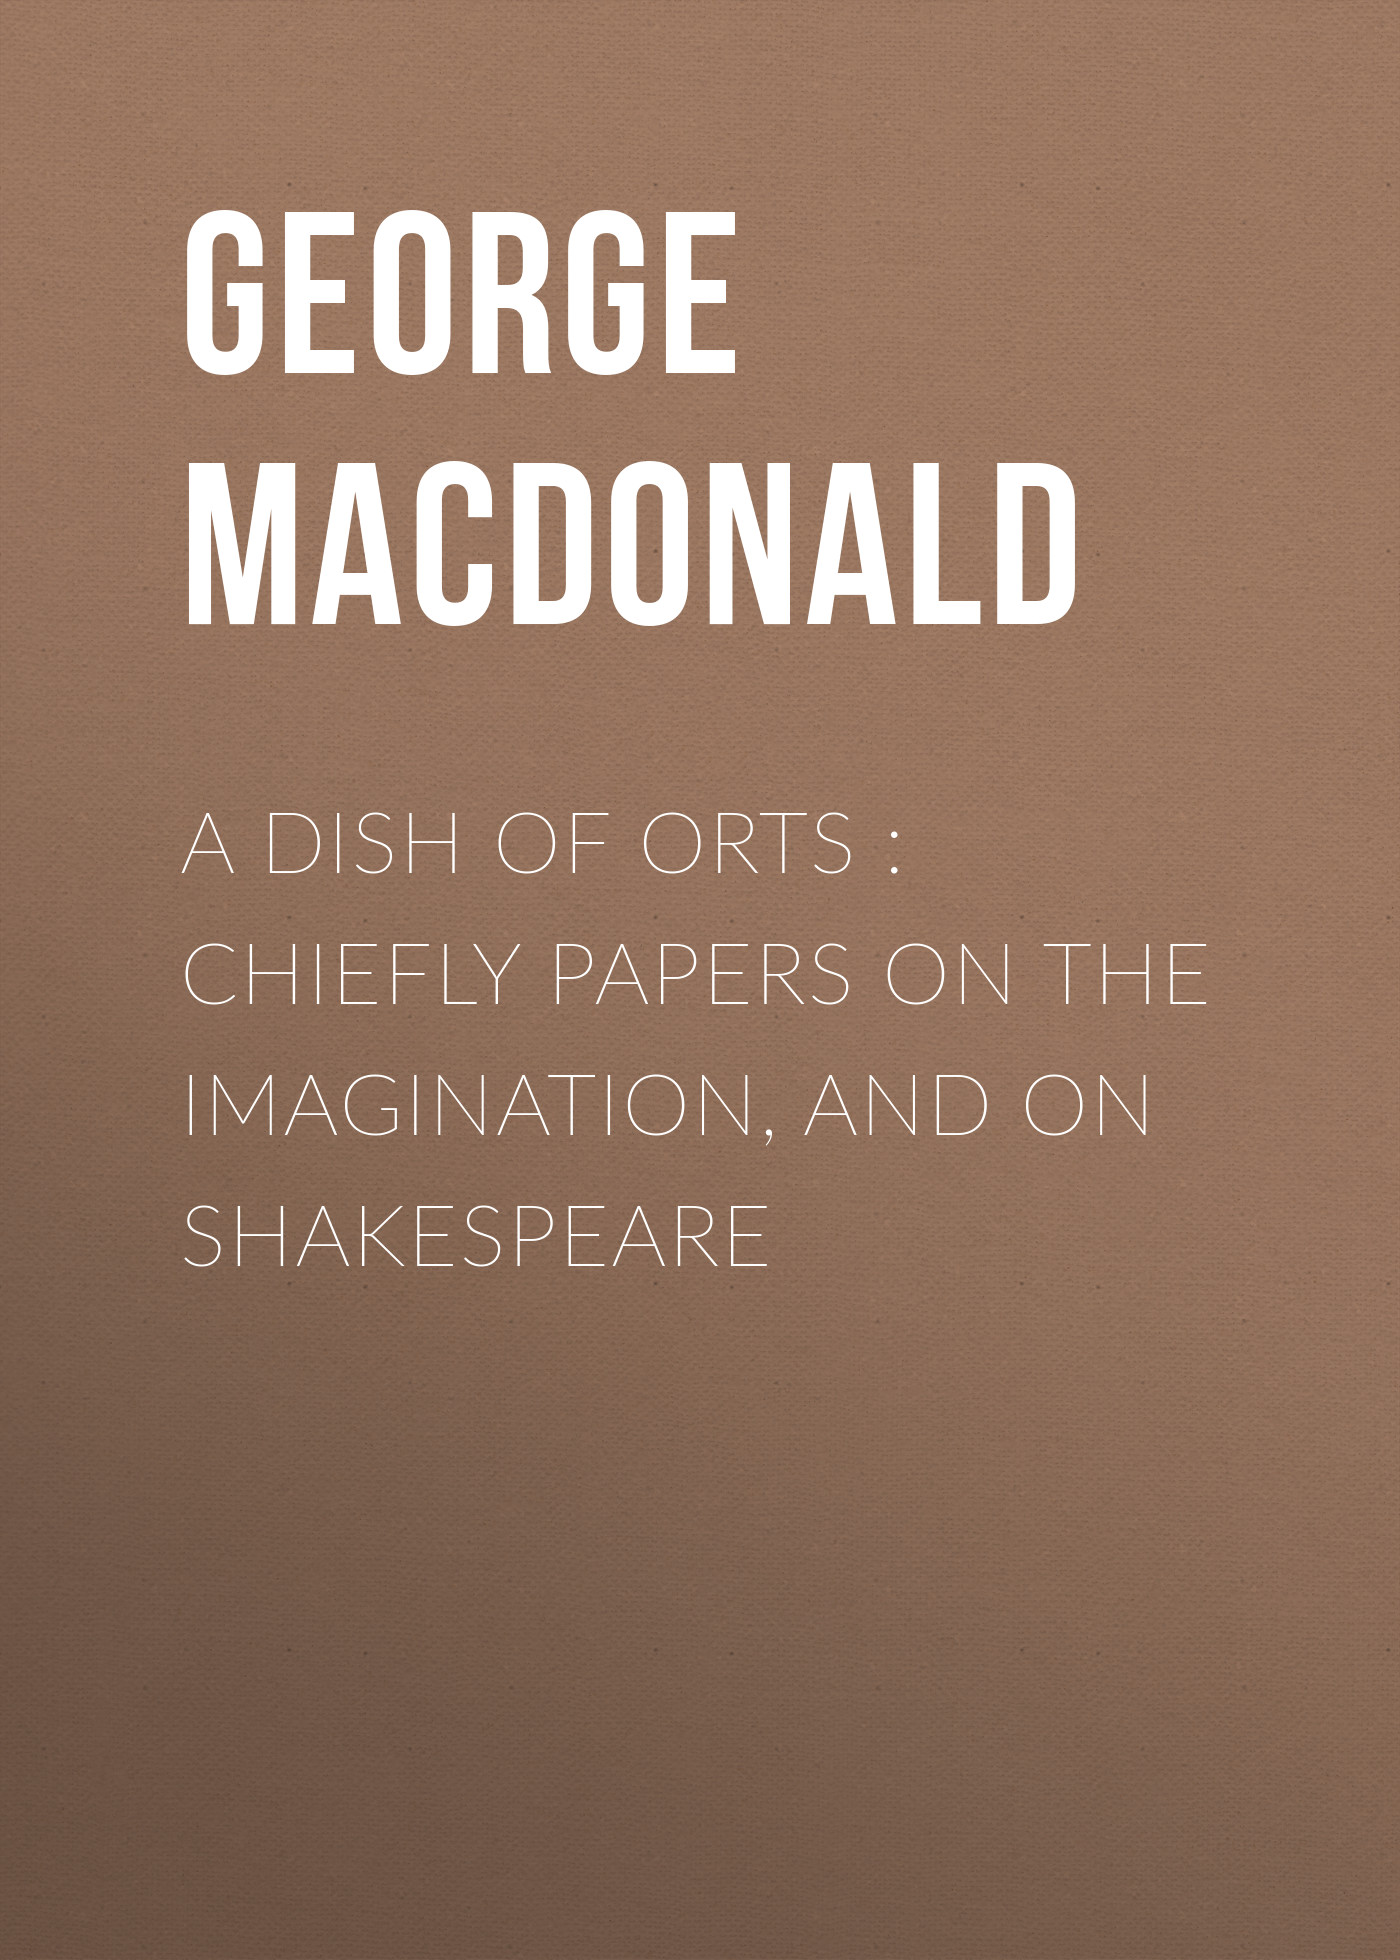 George MacDonald A Dish of Orts : Chiefly Papers on the Imagination, and on Shakespeare george macdonald weighed and wanting